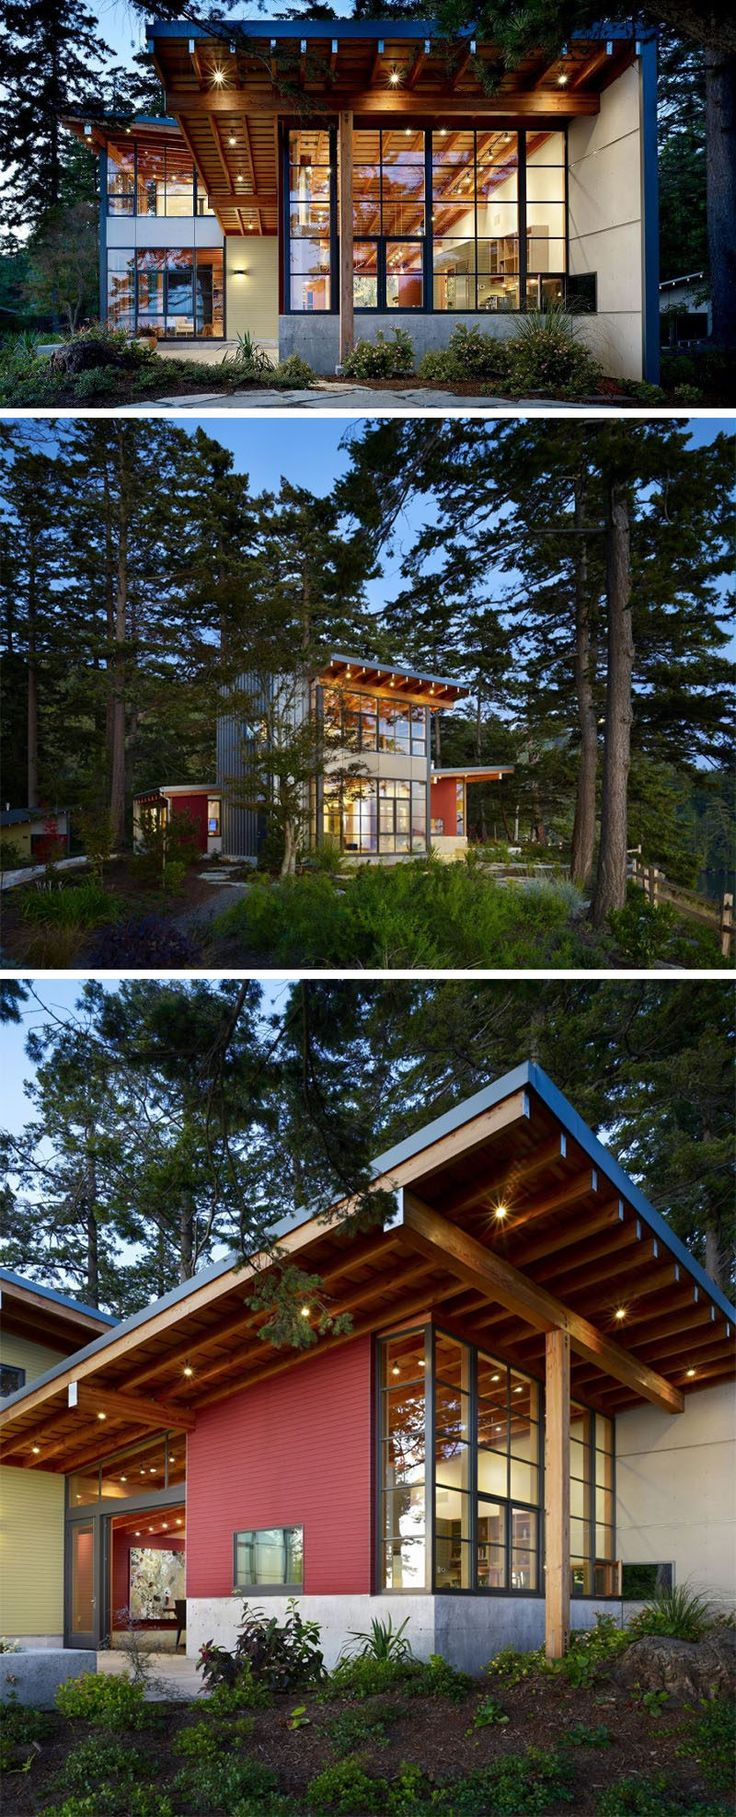 20 Awesome Examples Of Pacific Northwest Architecture // A wood beam structure, concrete slab foundation, and huge windows give this forest home a very west coast feel.